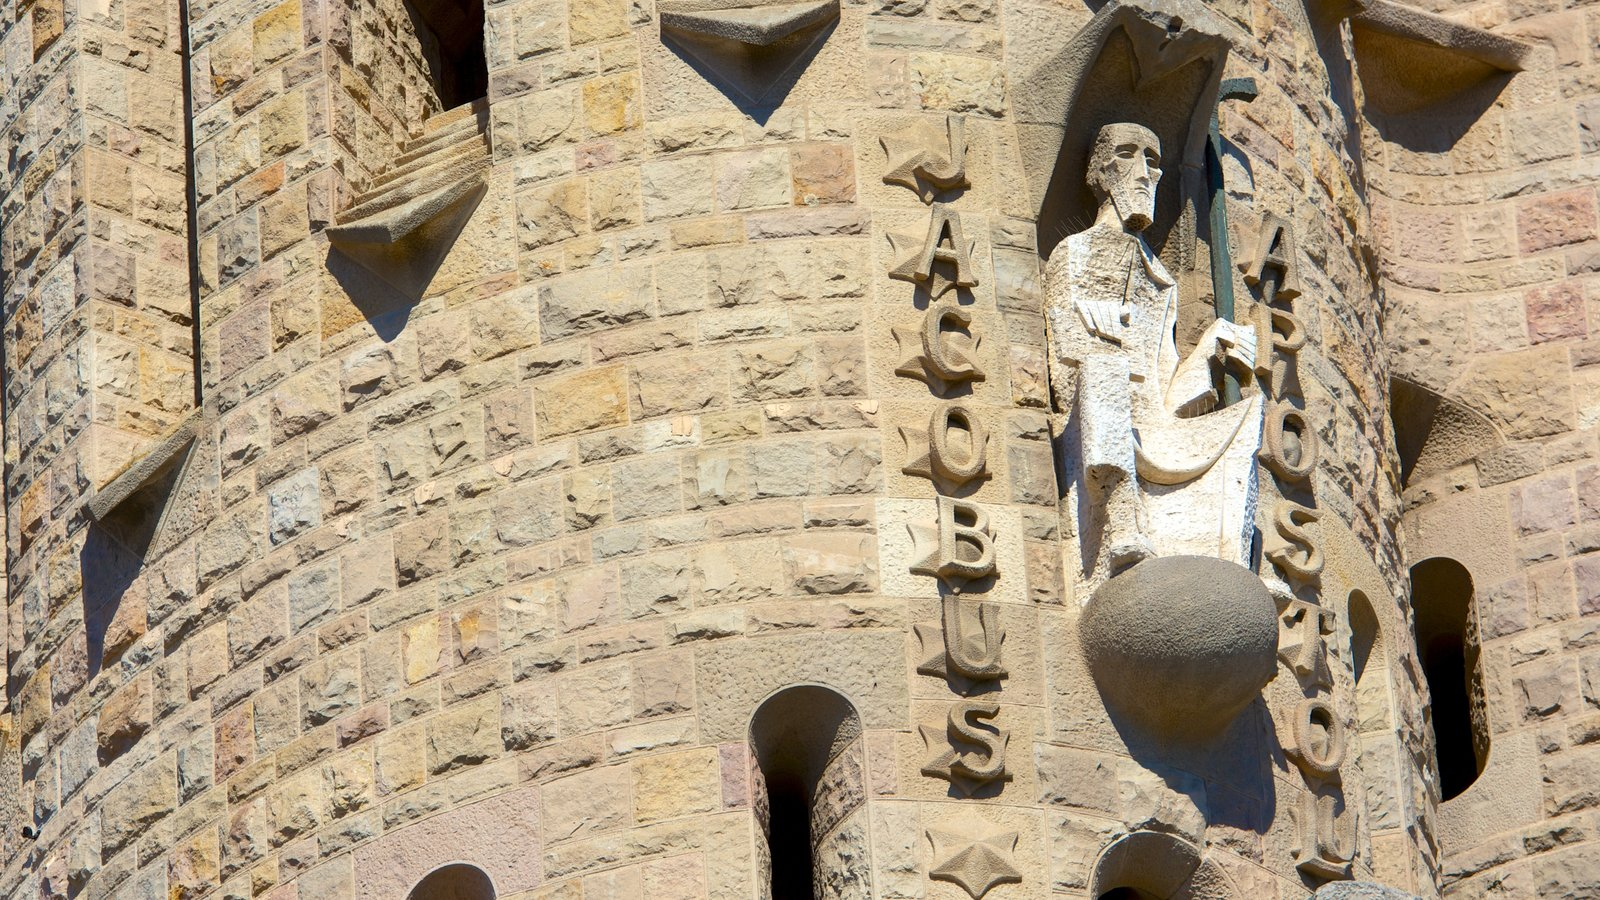 Sagrada Familia showing religious aspects, signage and a church or cathedral